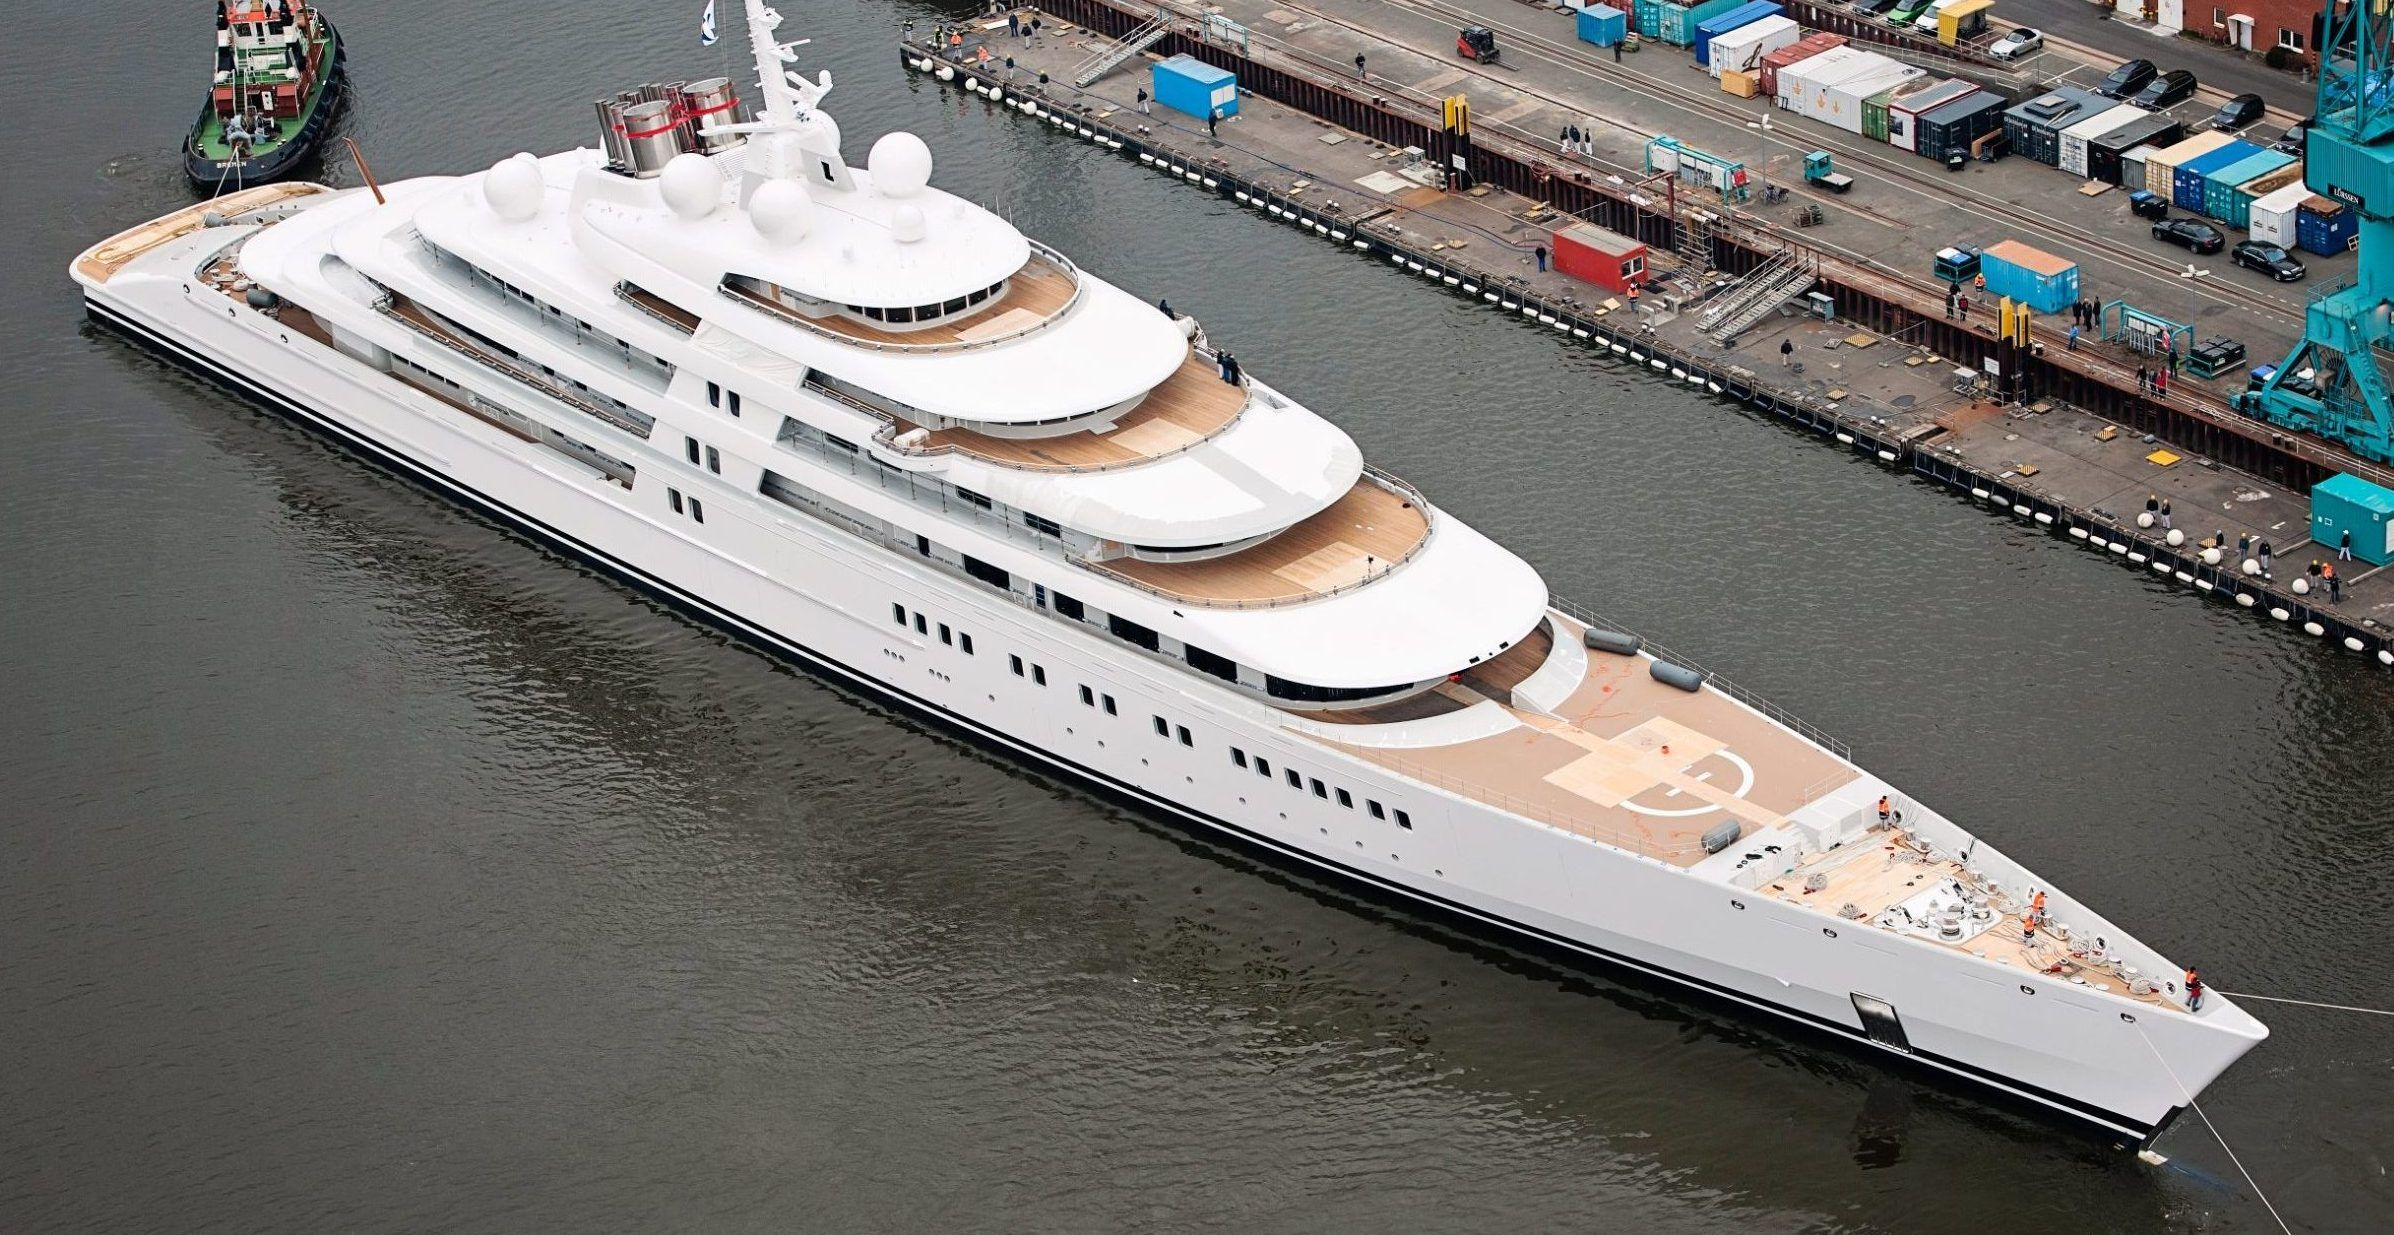 Here's How Much It Cost To Build The World's Most Expensive Luxury Yacht Azzam